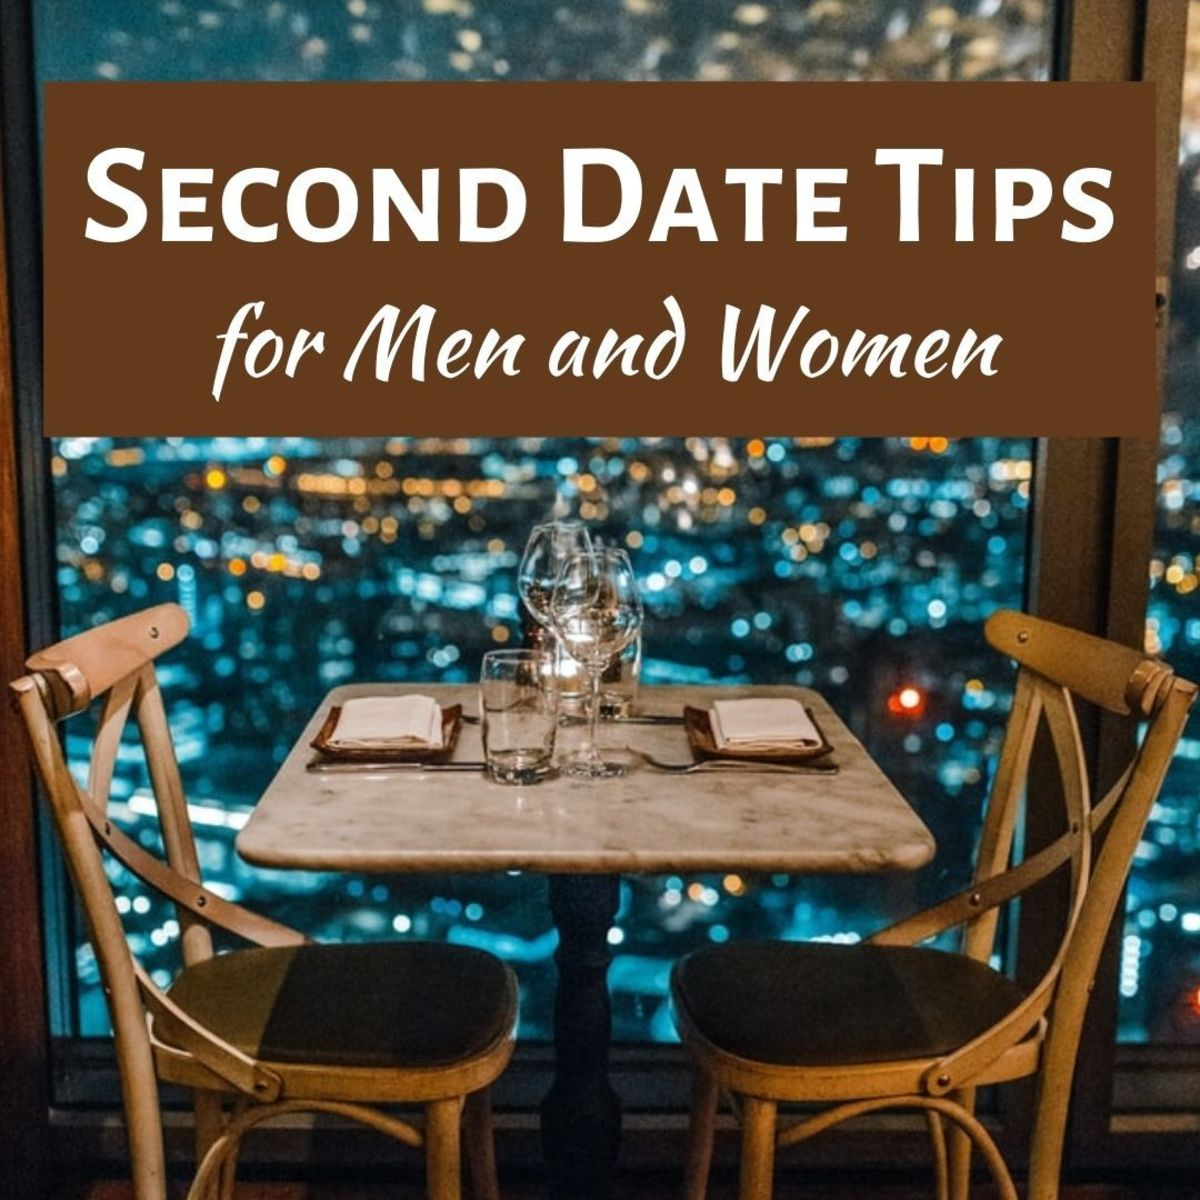 Nervous about your second date? Don't worry—here are a few tips to help you out.